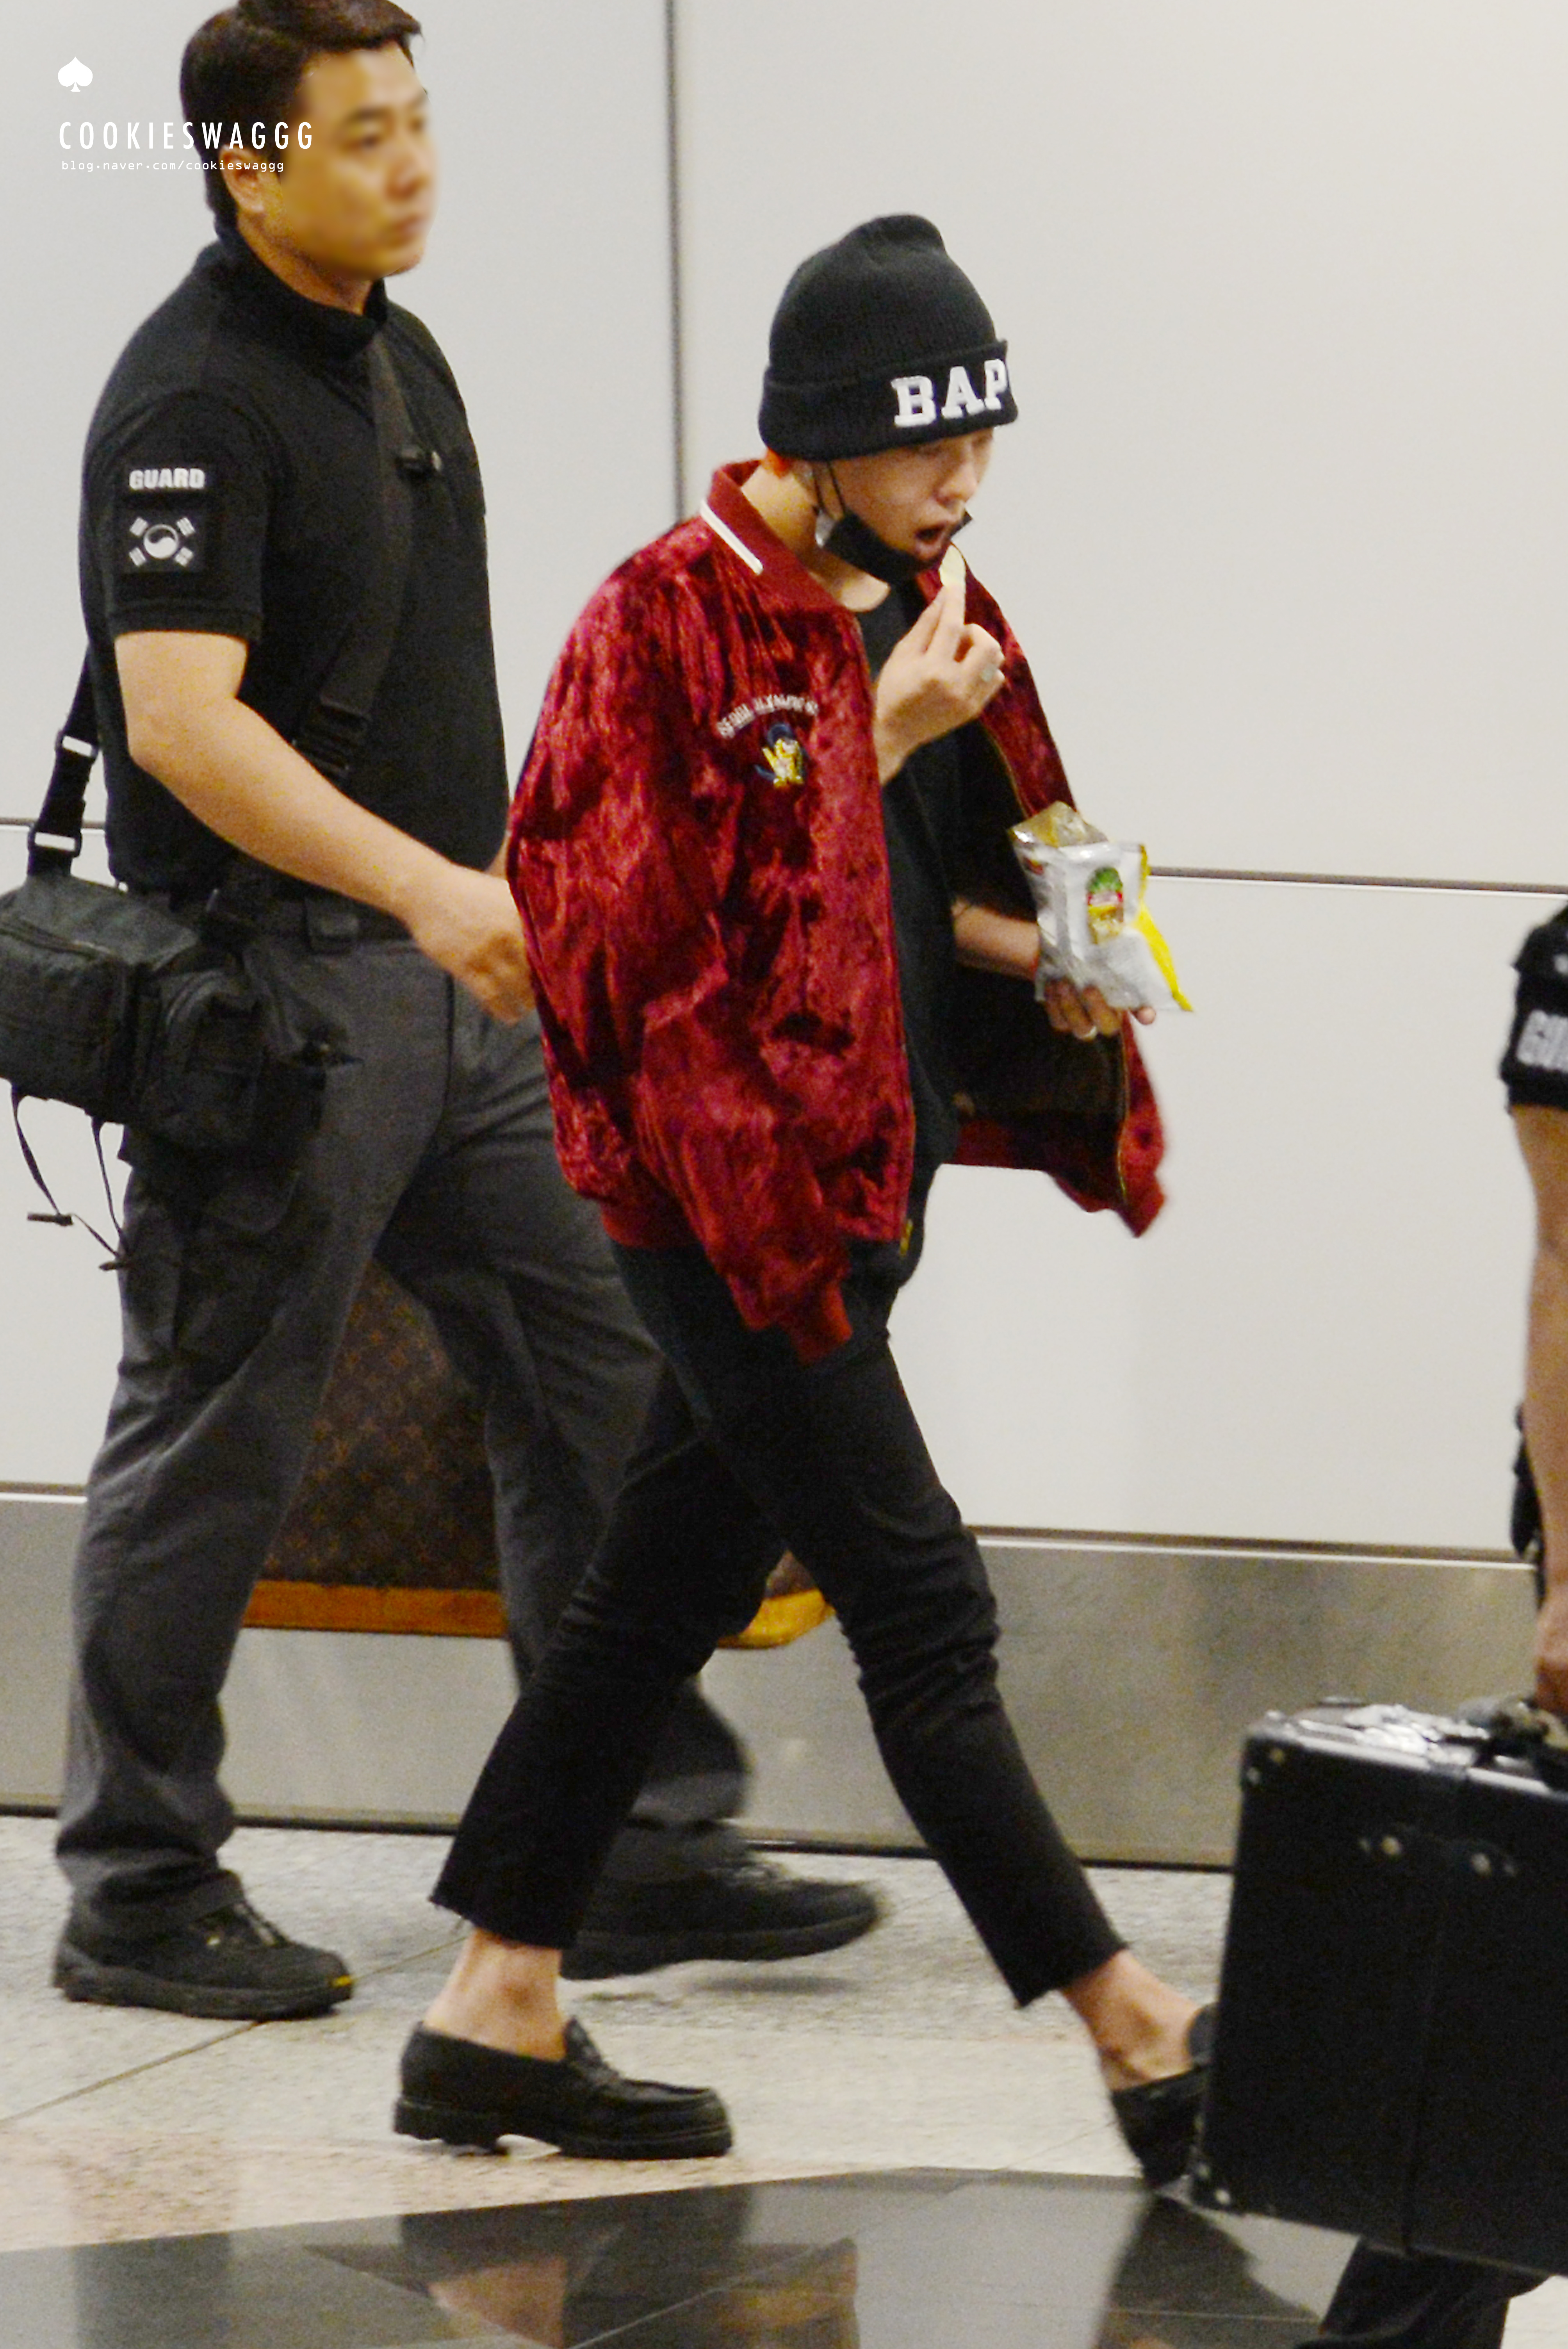 Big Bang - Malaysia Airport - 25jul2015 - cookieswaggg - 22.jpg